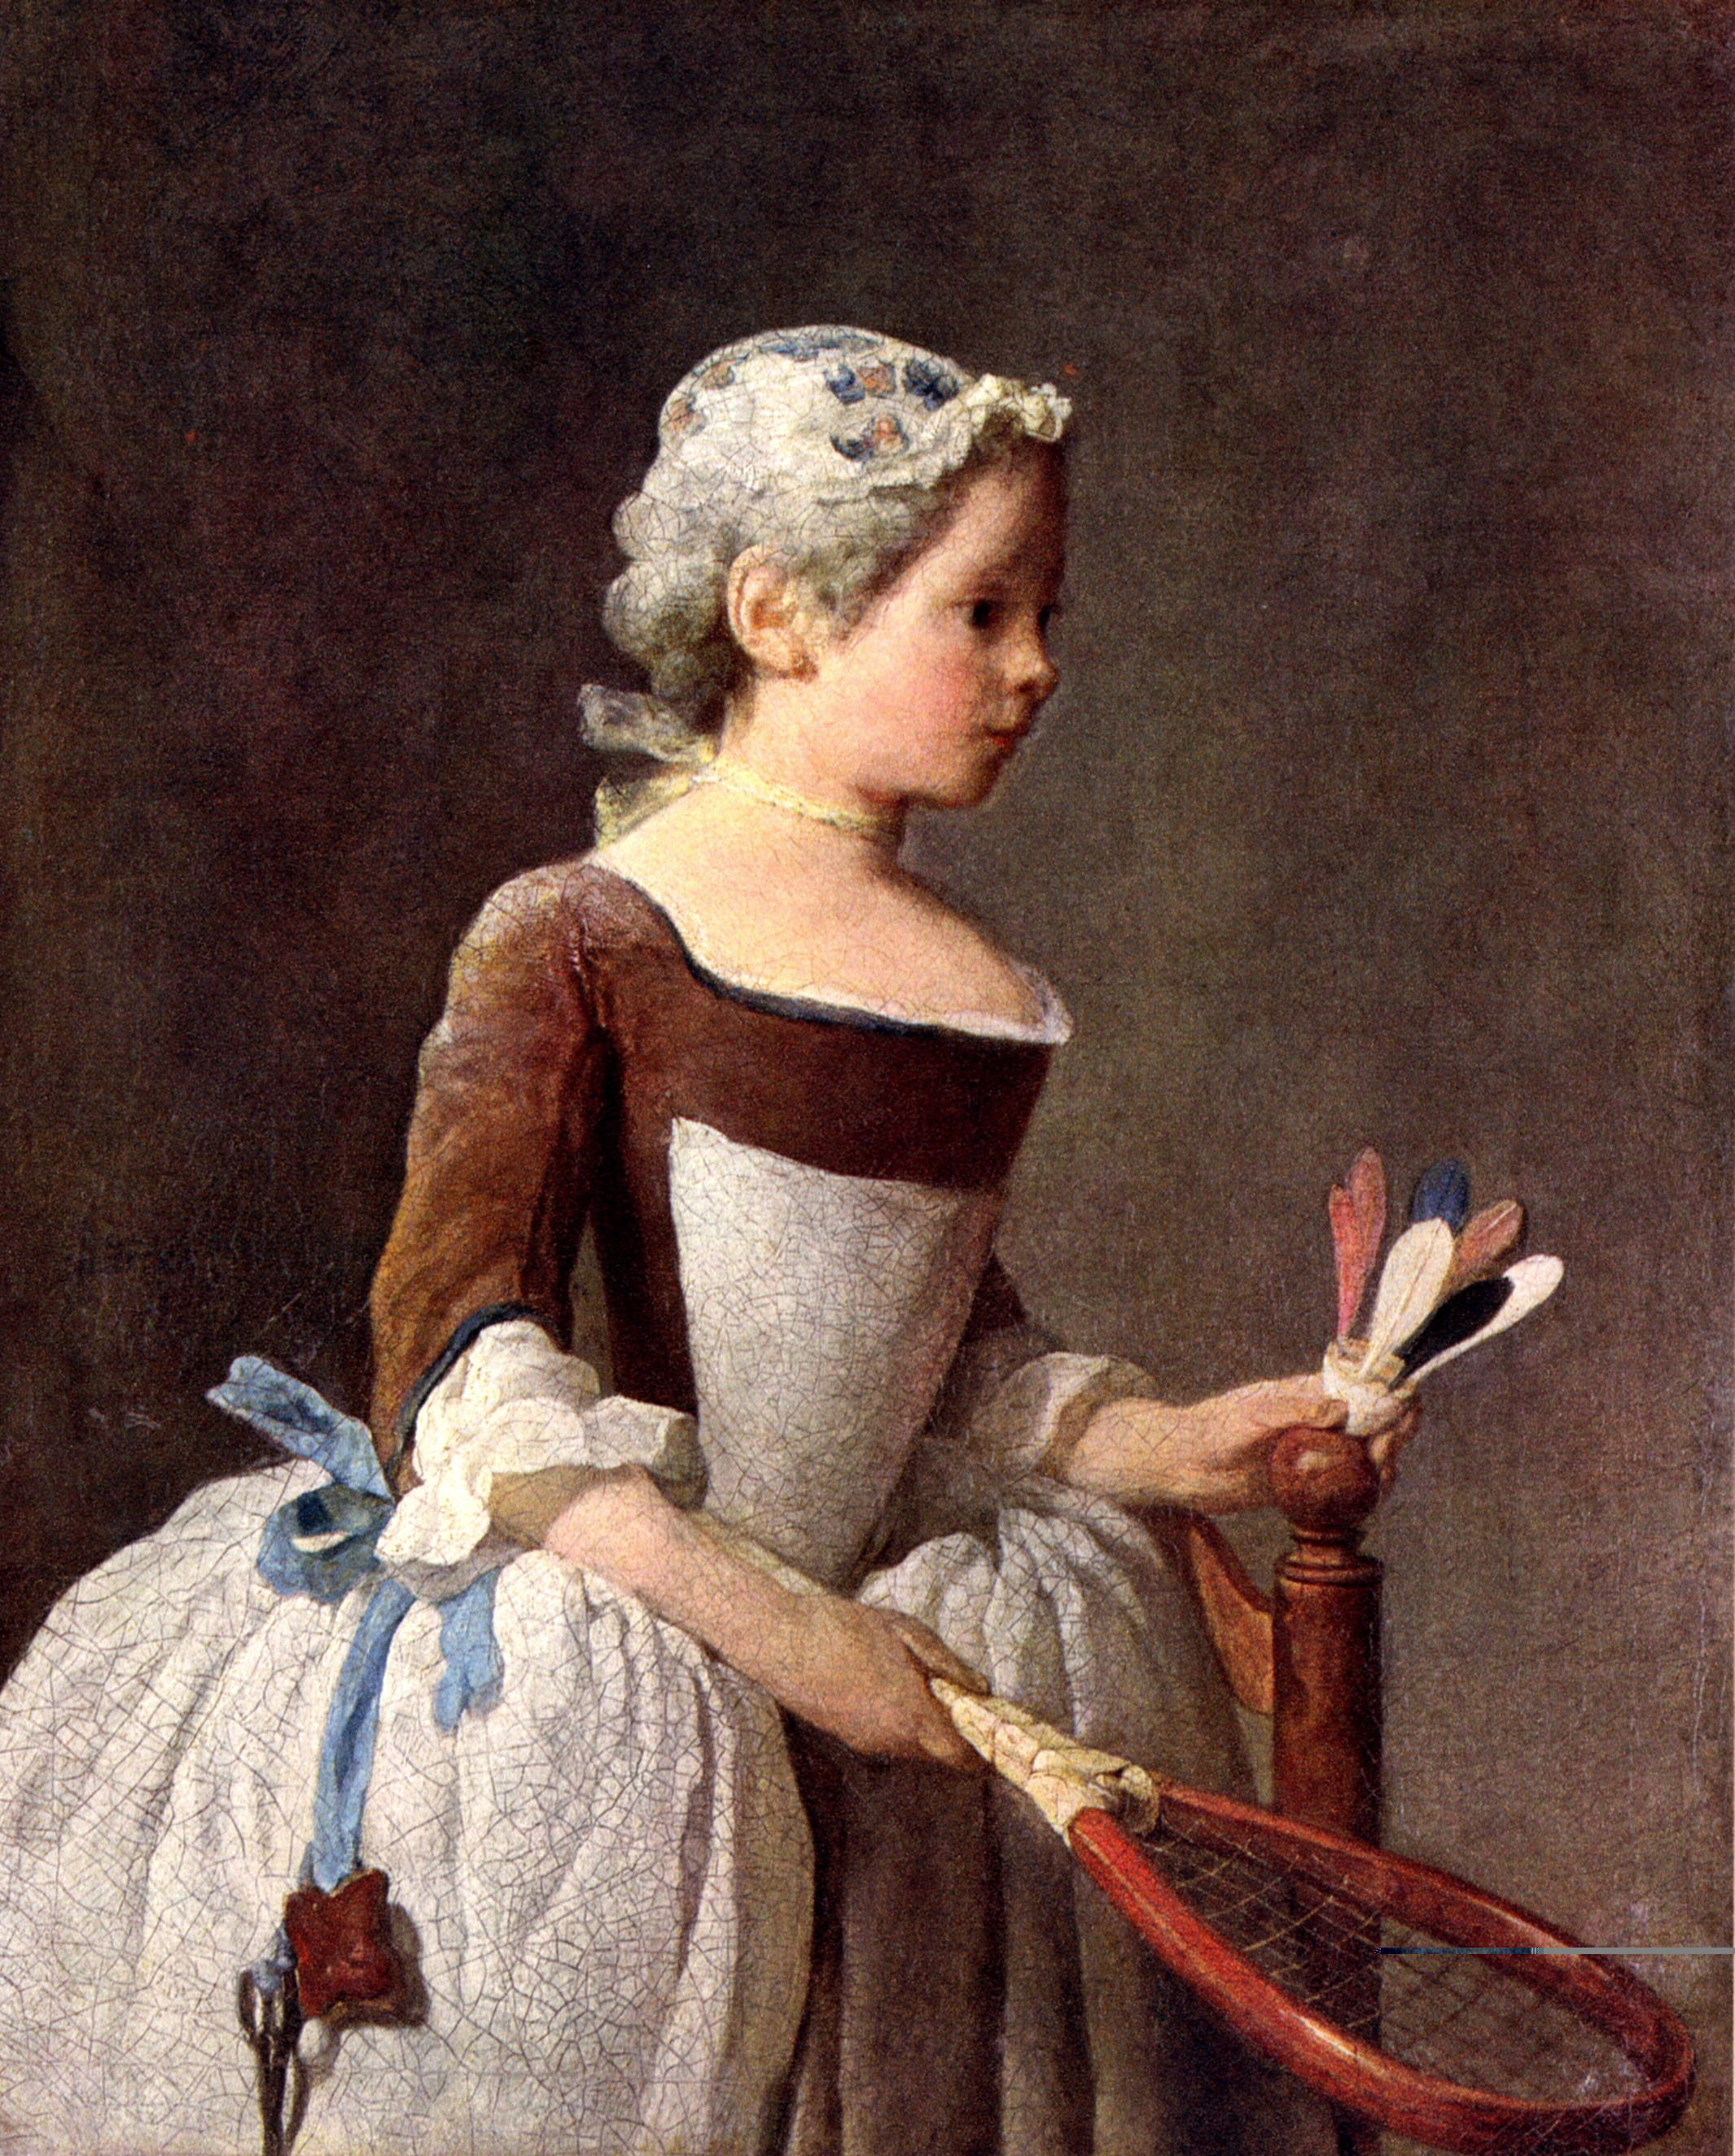 Chardin Z vers 1740 girl-with-racket-and-shuttlecock Galleria degli Uffizi, Florence